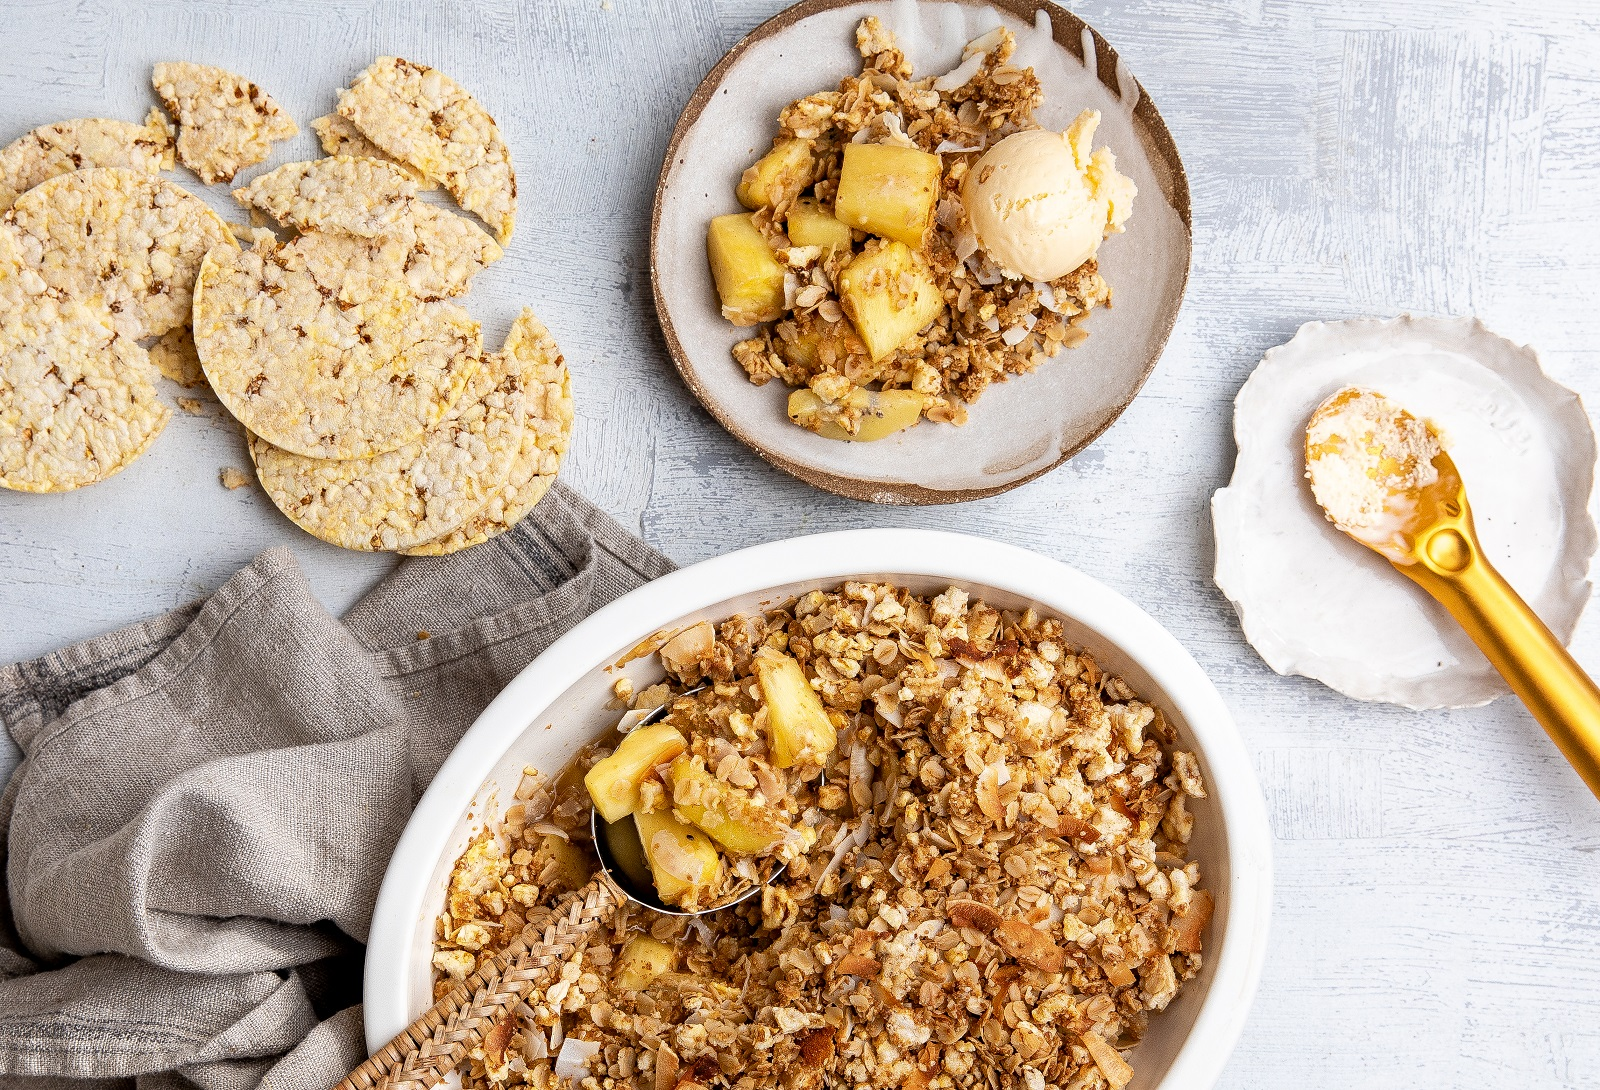 Pineapple & Kiwi Fruit Crumble using CORN THINS slices & GF oats